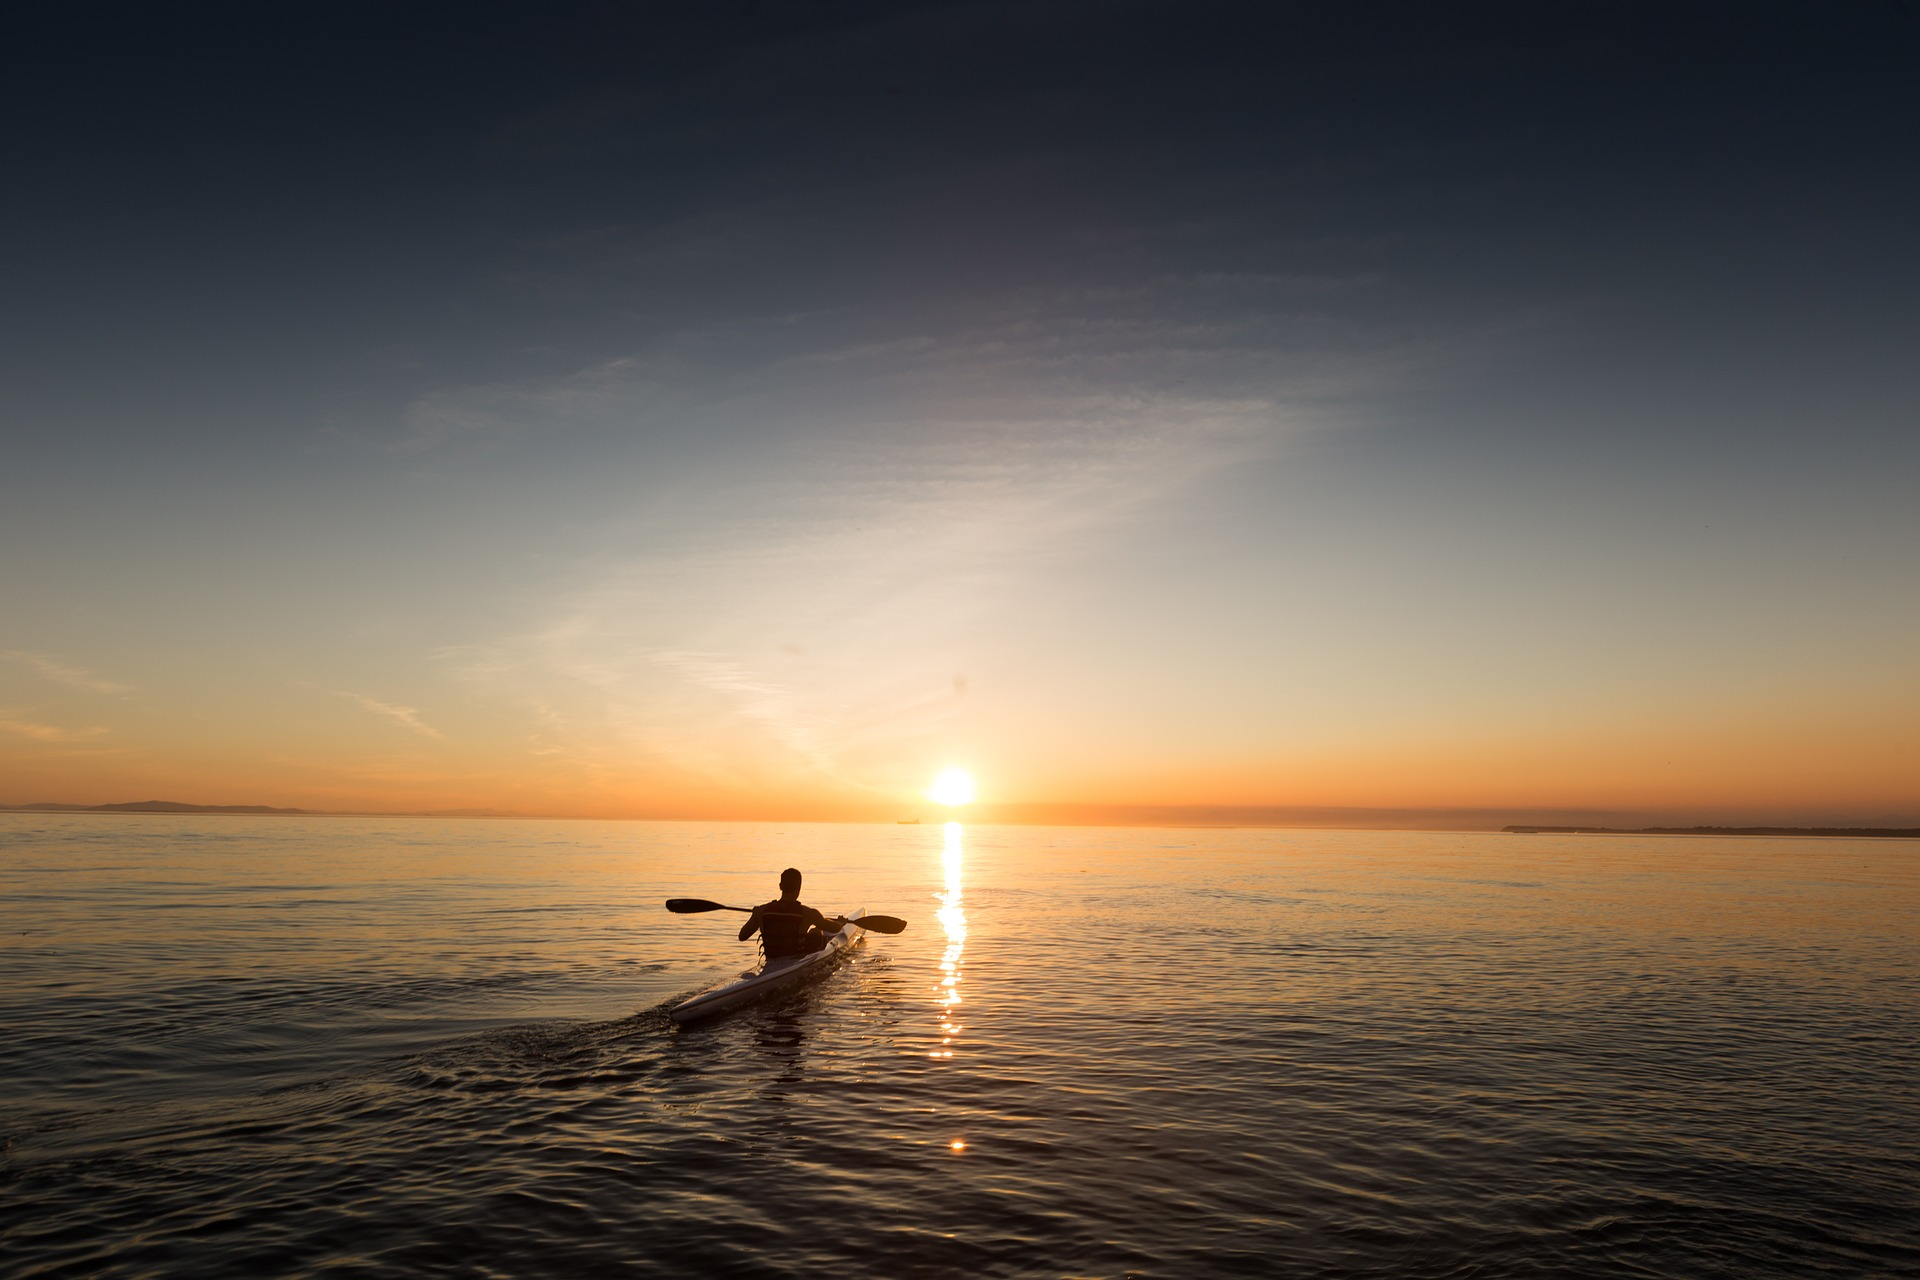 Sea kayaks are an excellent choice for paddlers who feel the call of the open ocean.